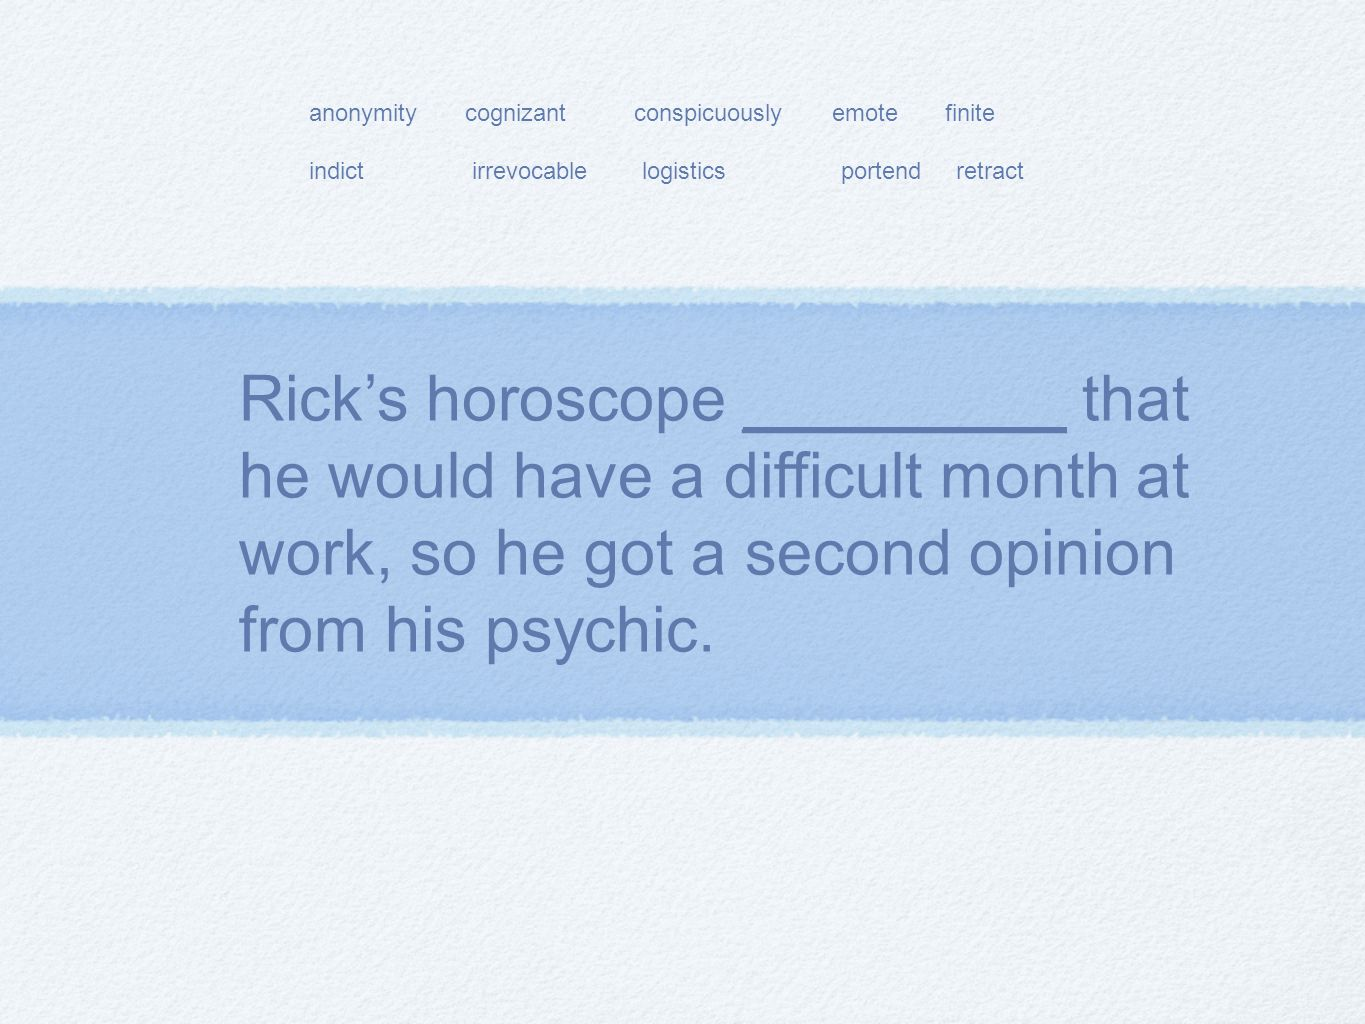 Rick's horoscope _________ that he would have a difficult month at work, so he got a second opinion from his psychic.